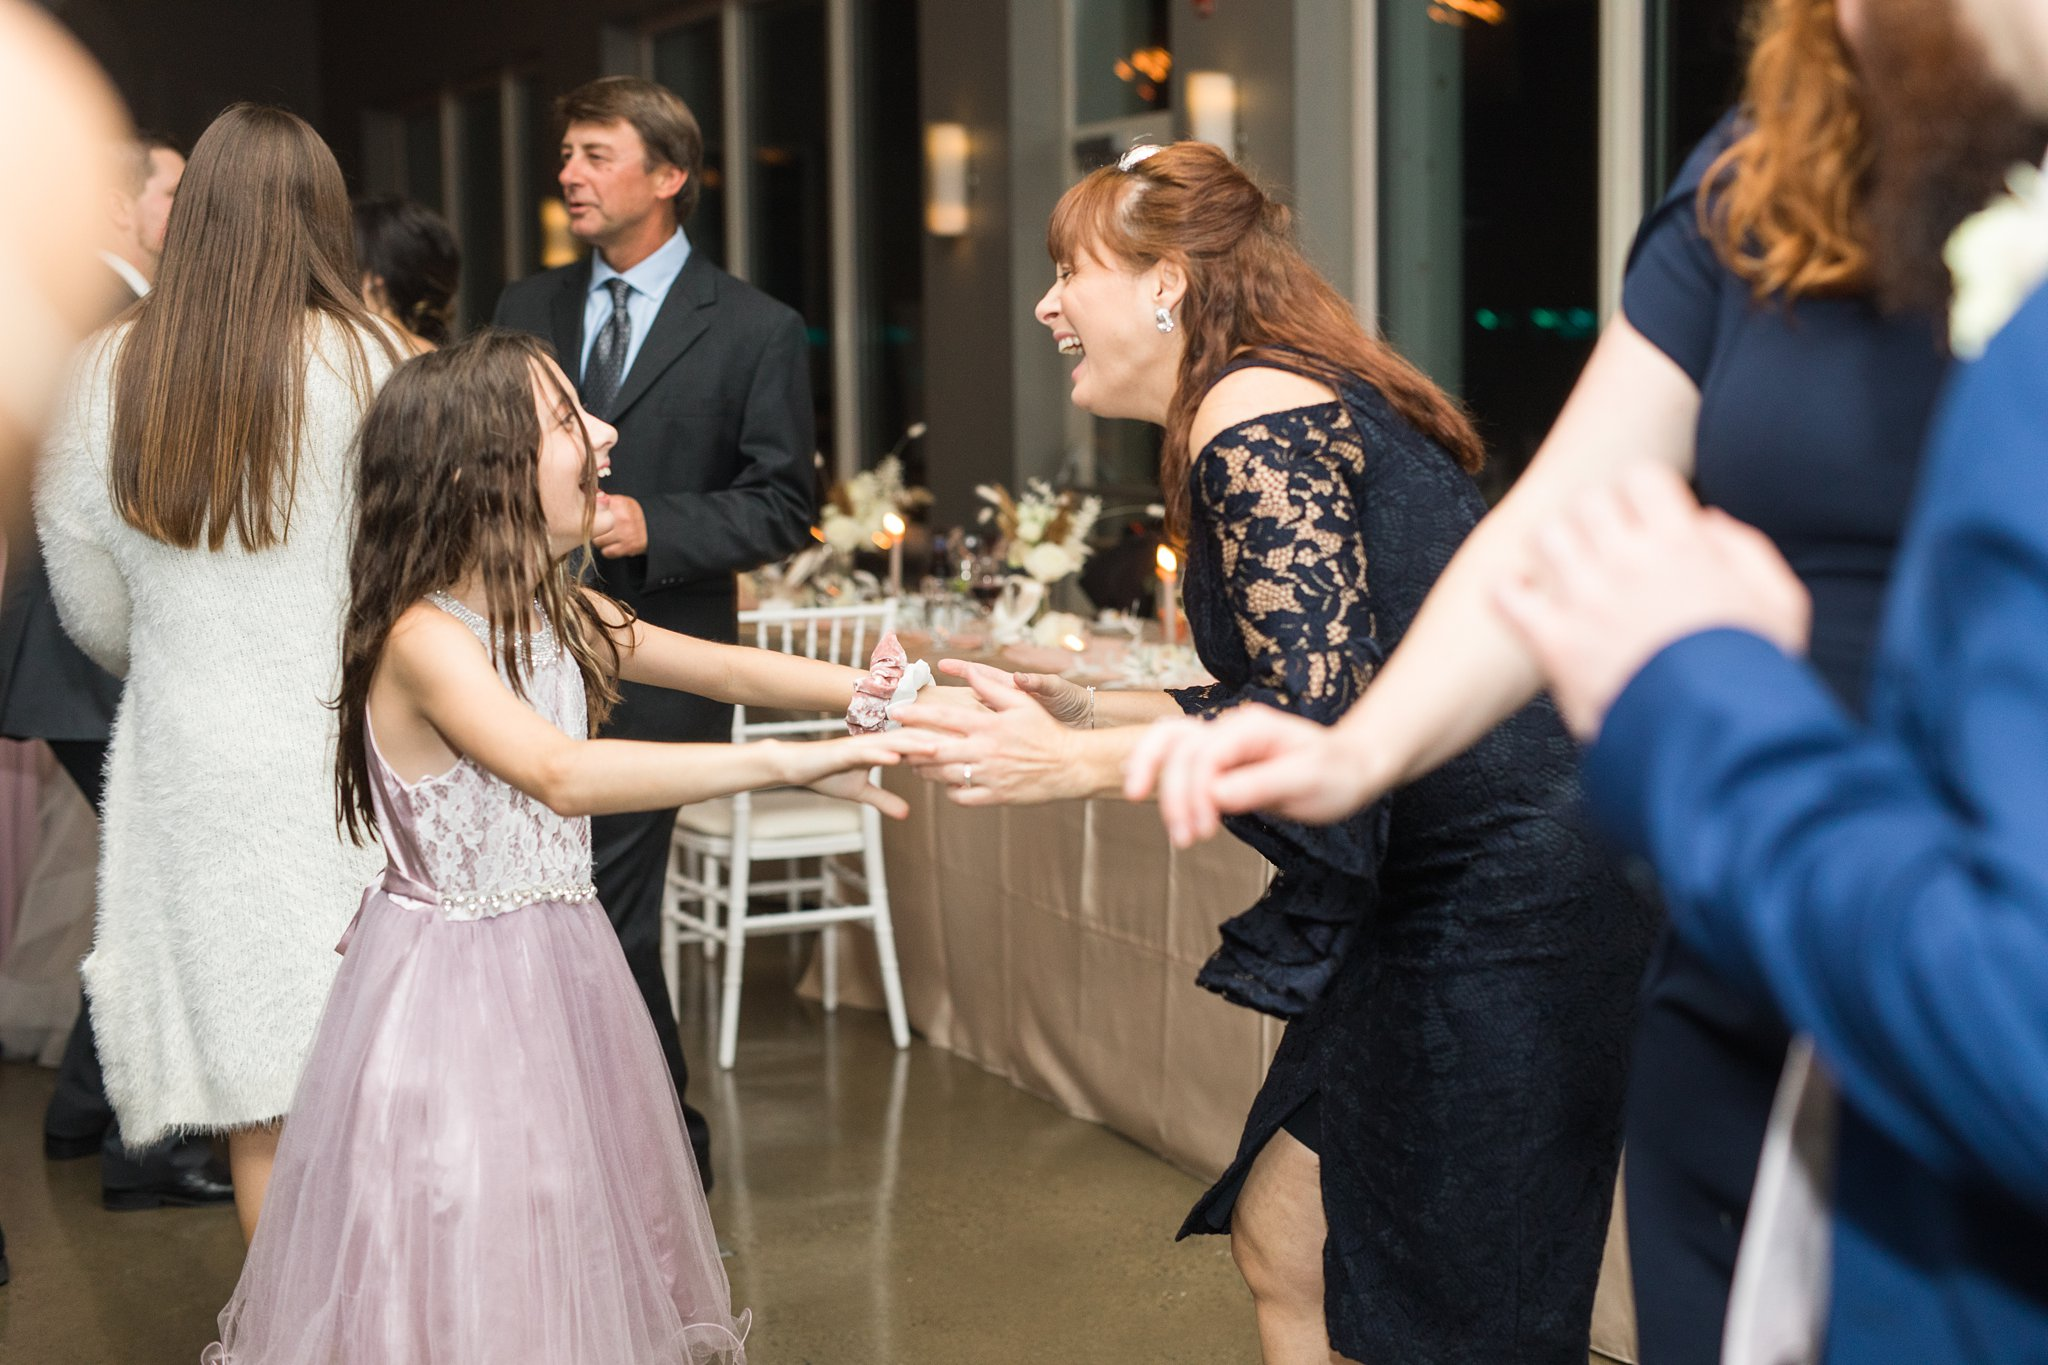 Mother and daughter dance at reception, Wakefield wedding photos, Le Belvedere